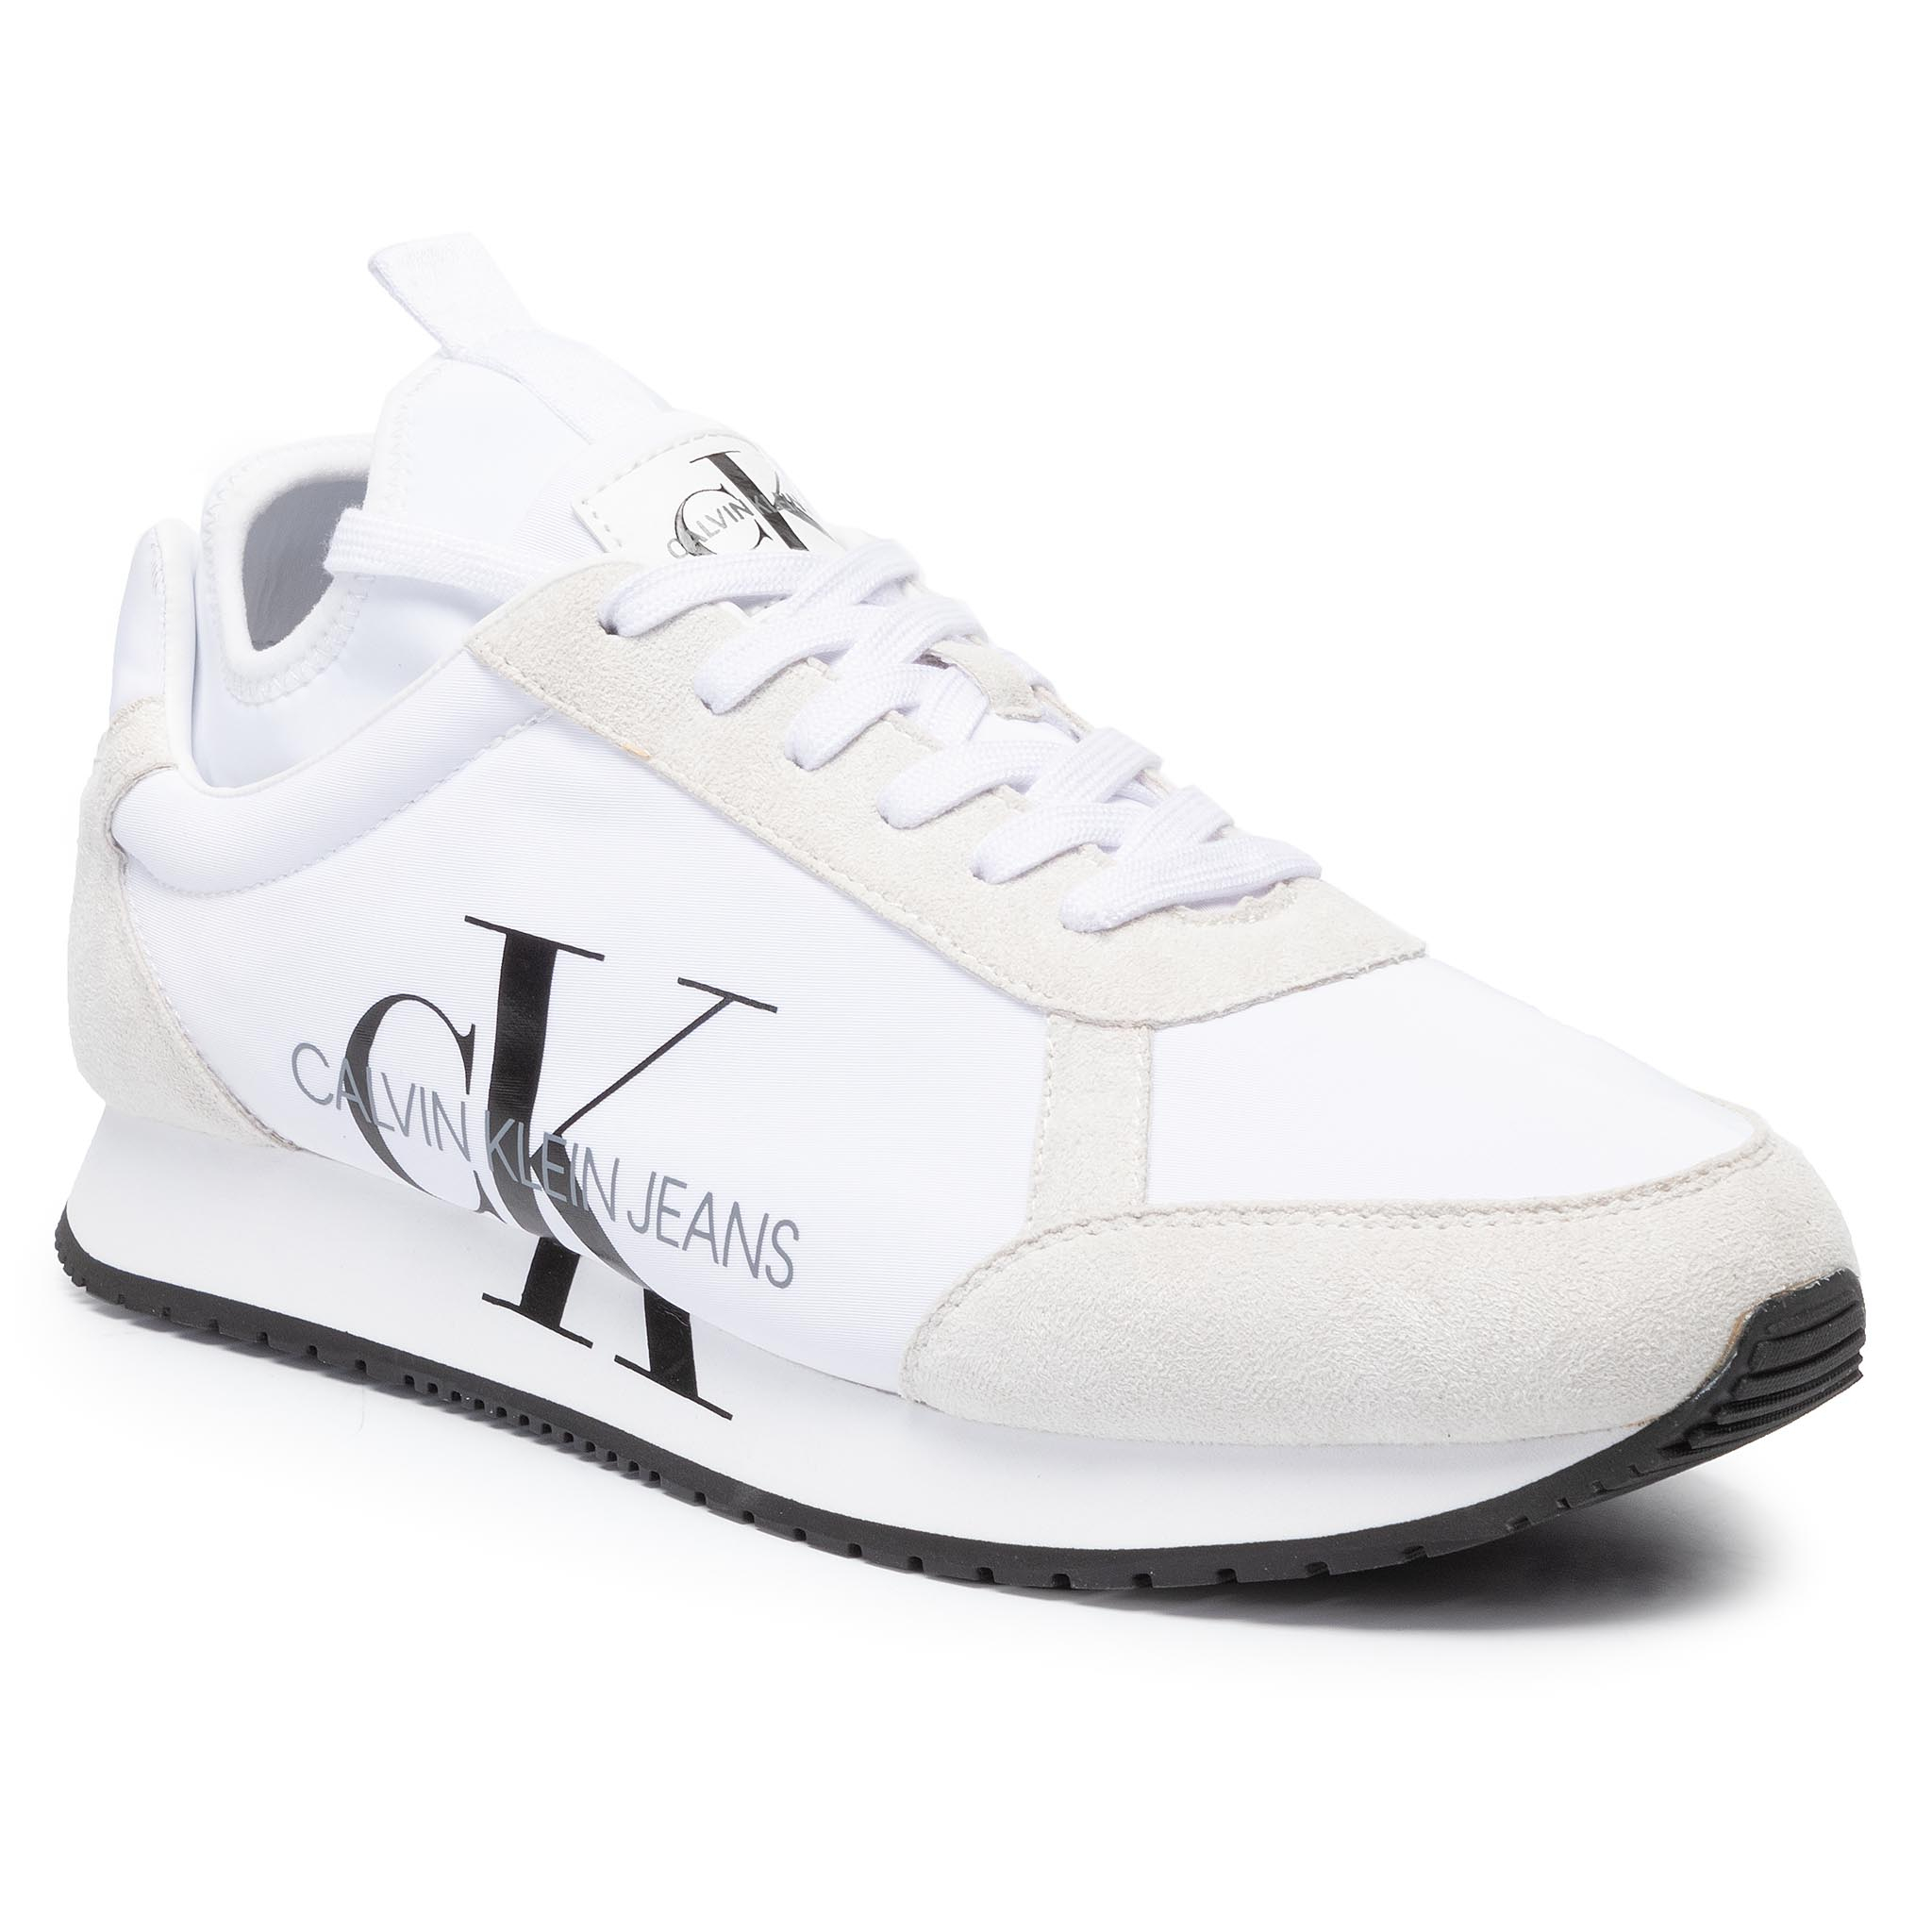 Image of Sneakers CALVIN KLEIN JEANS - Jemmy B4S0136 White